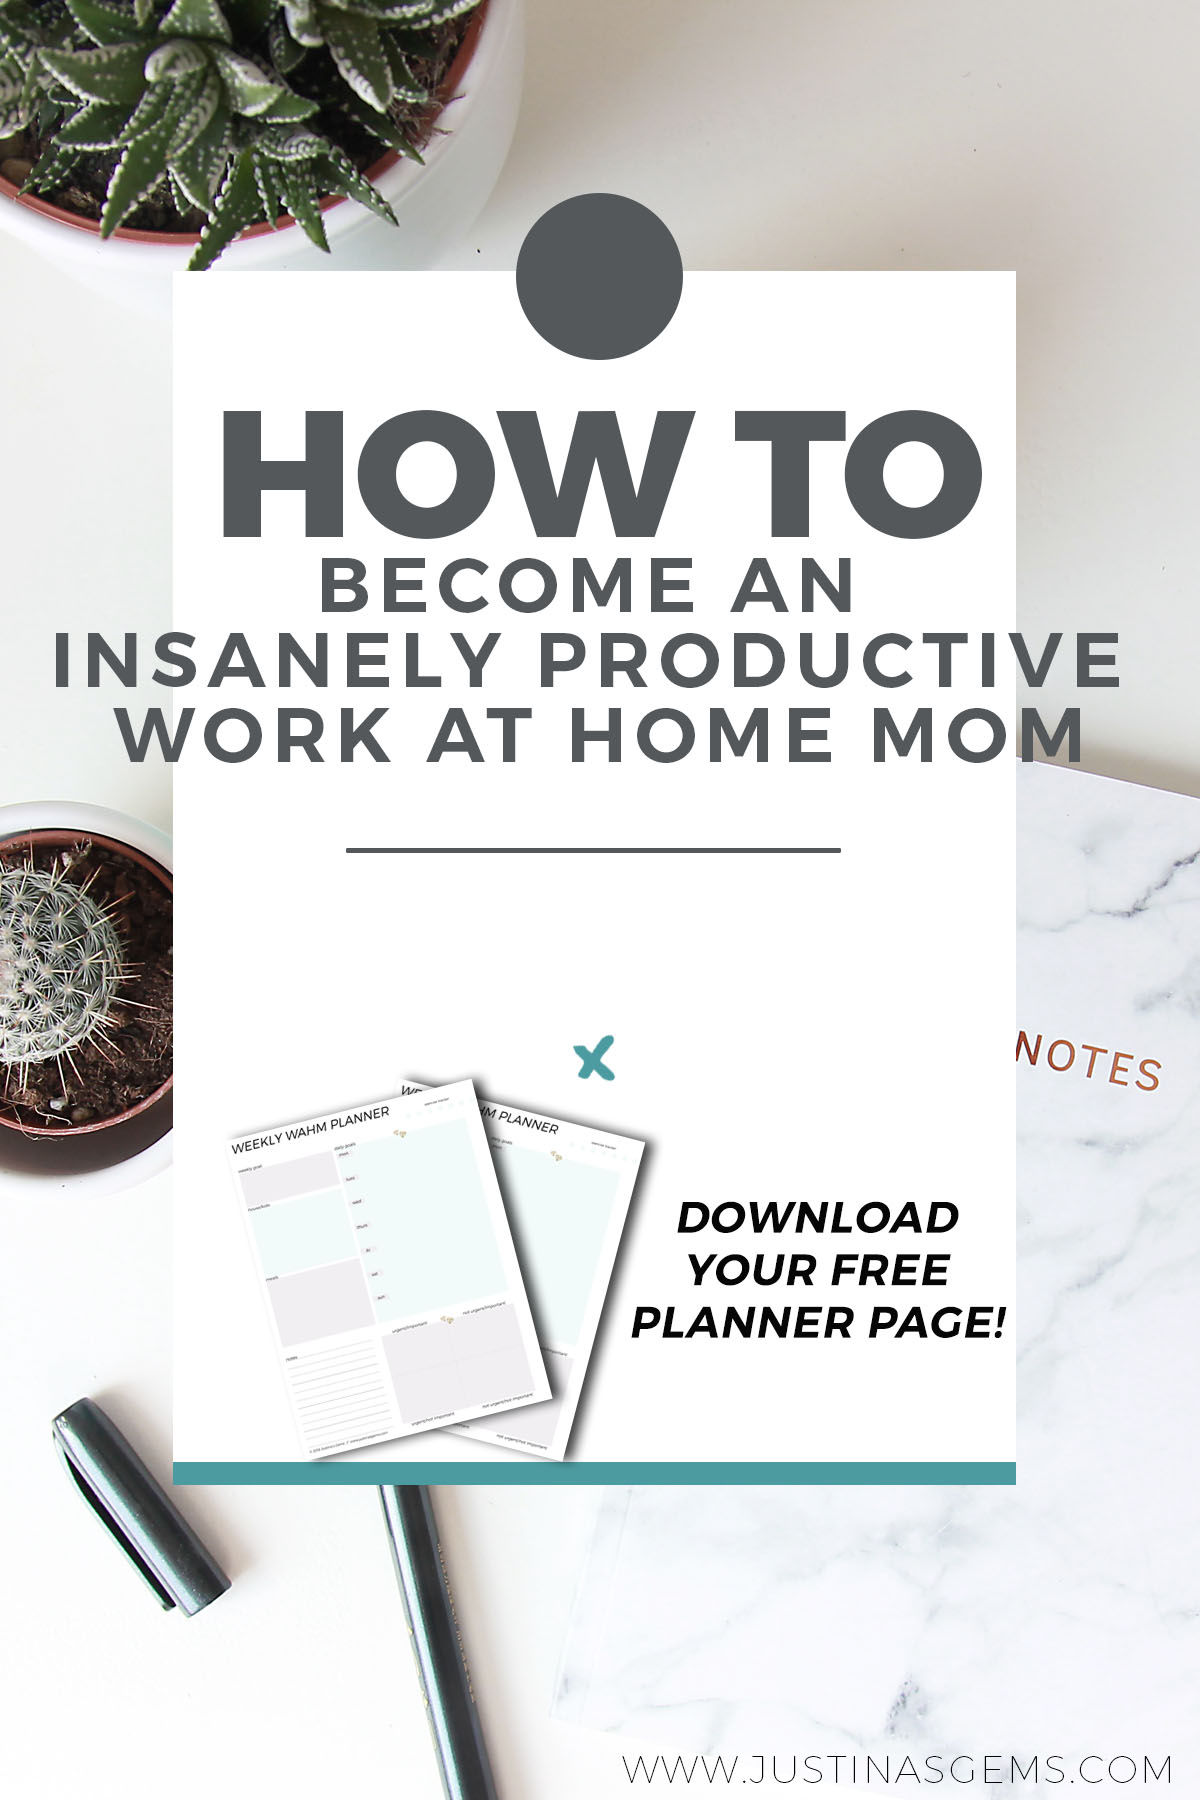 How to become an insanely productive work at home mom